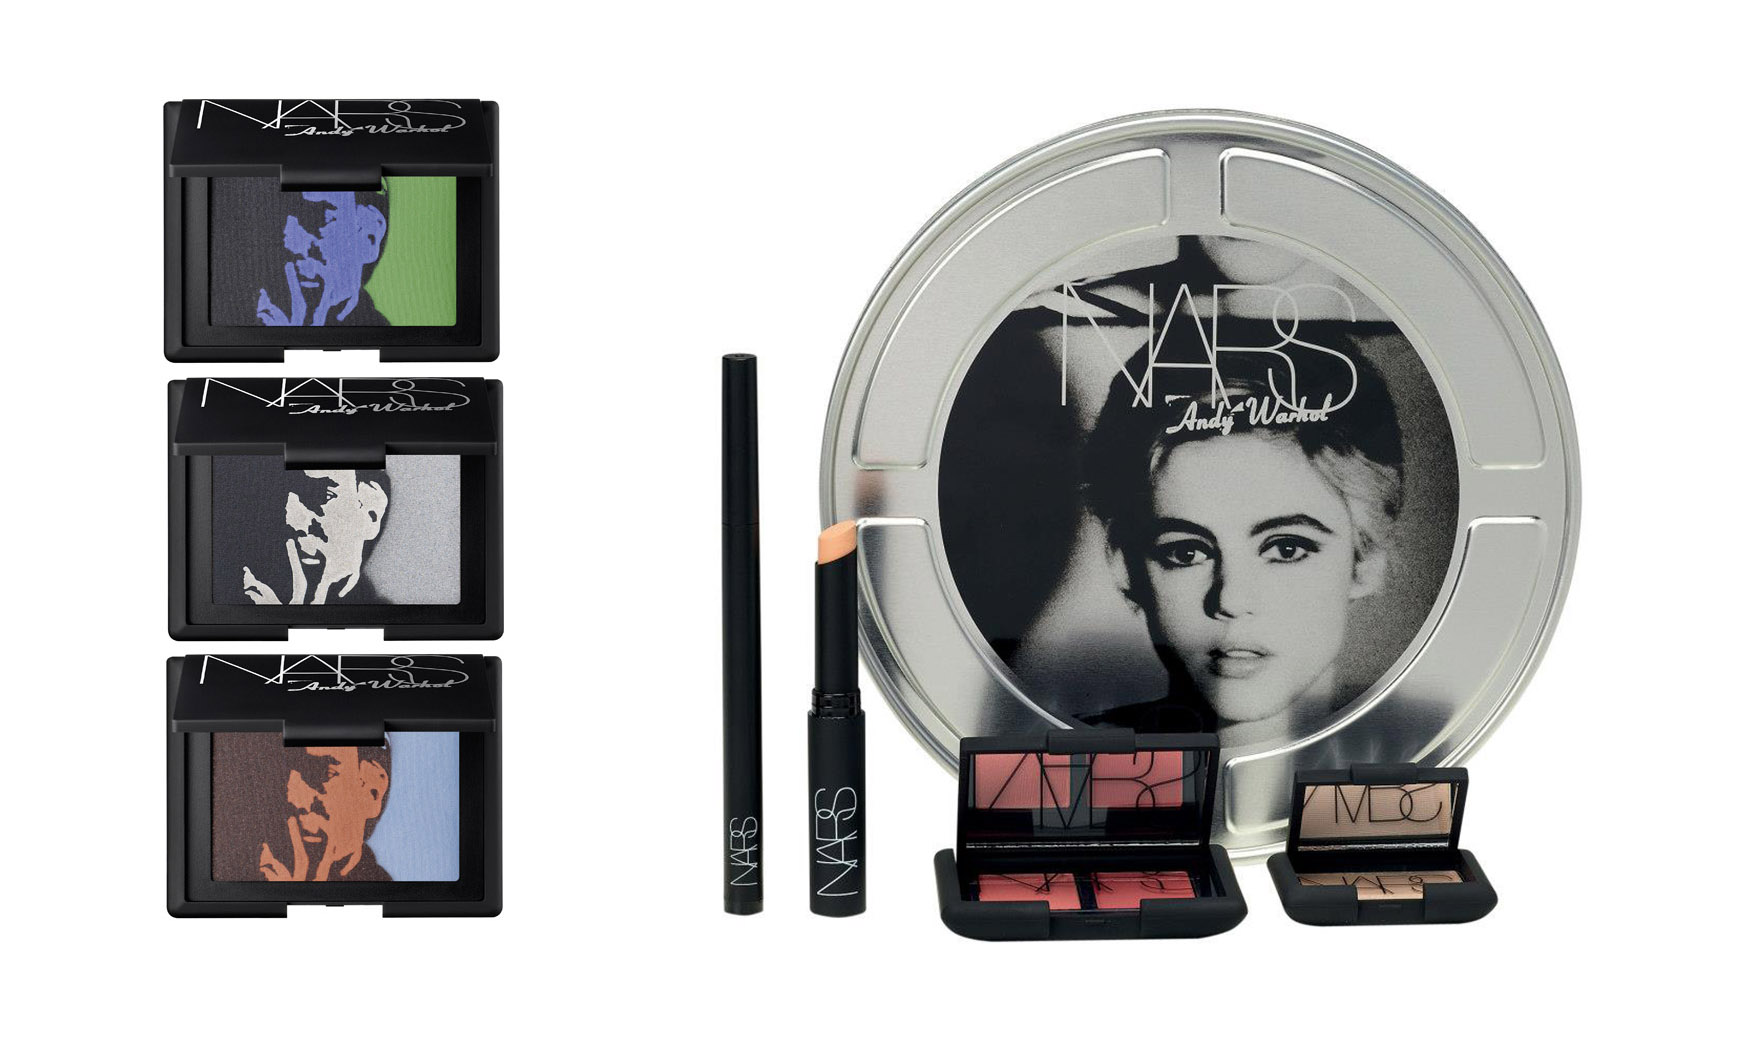 nars andy warhol lovely packaging cosmetics